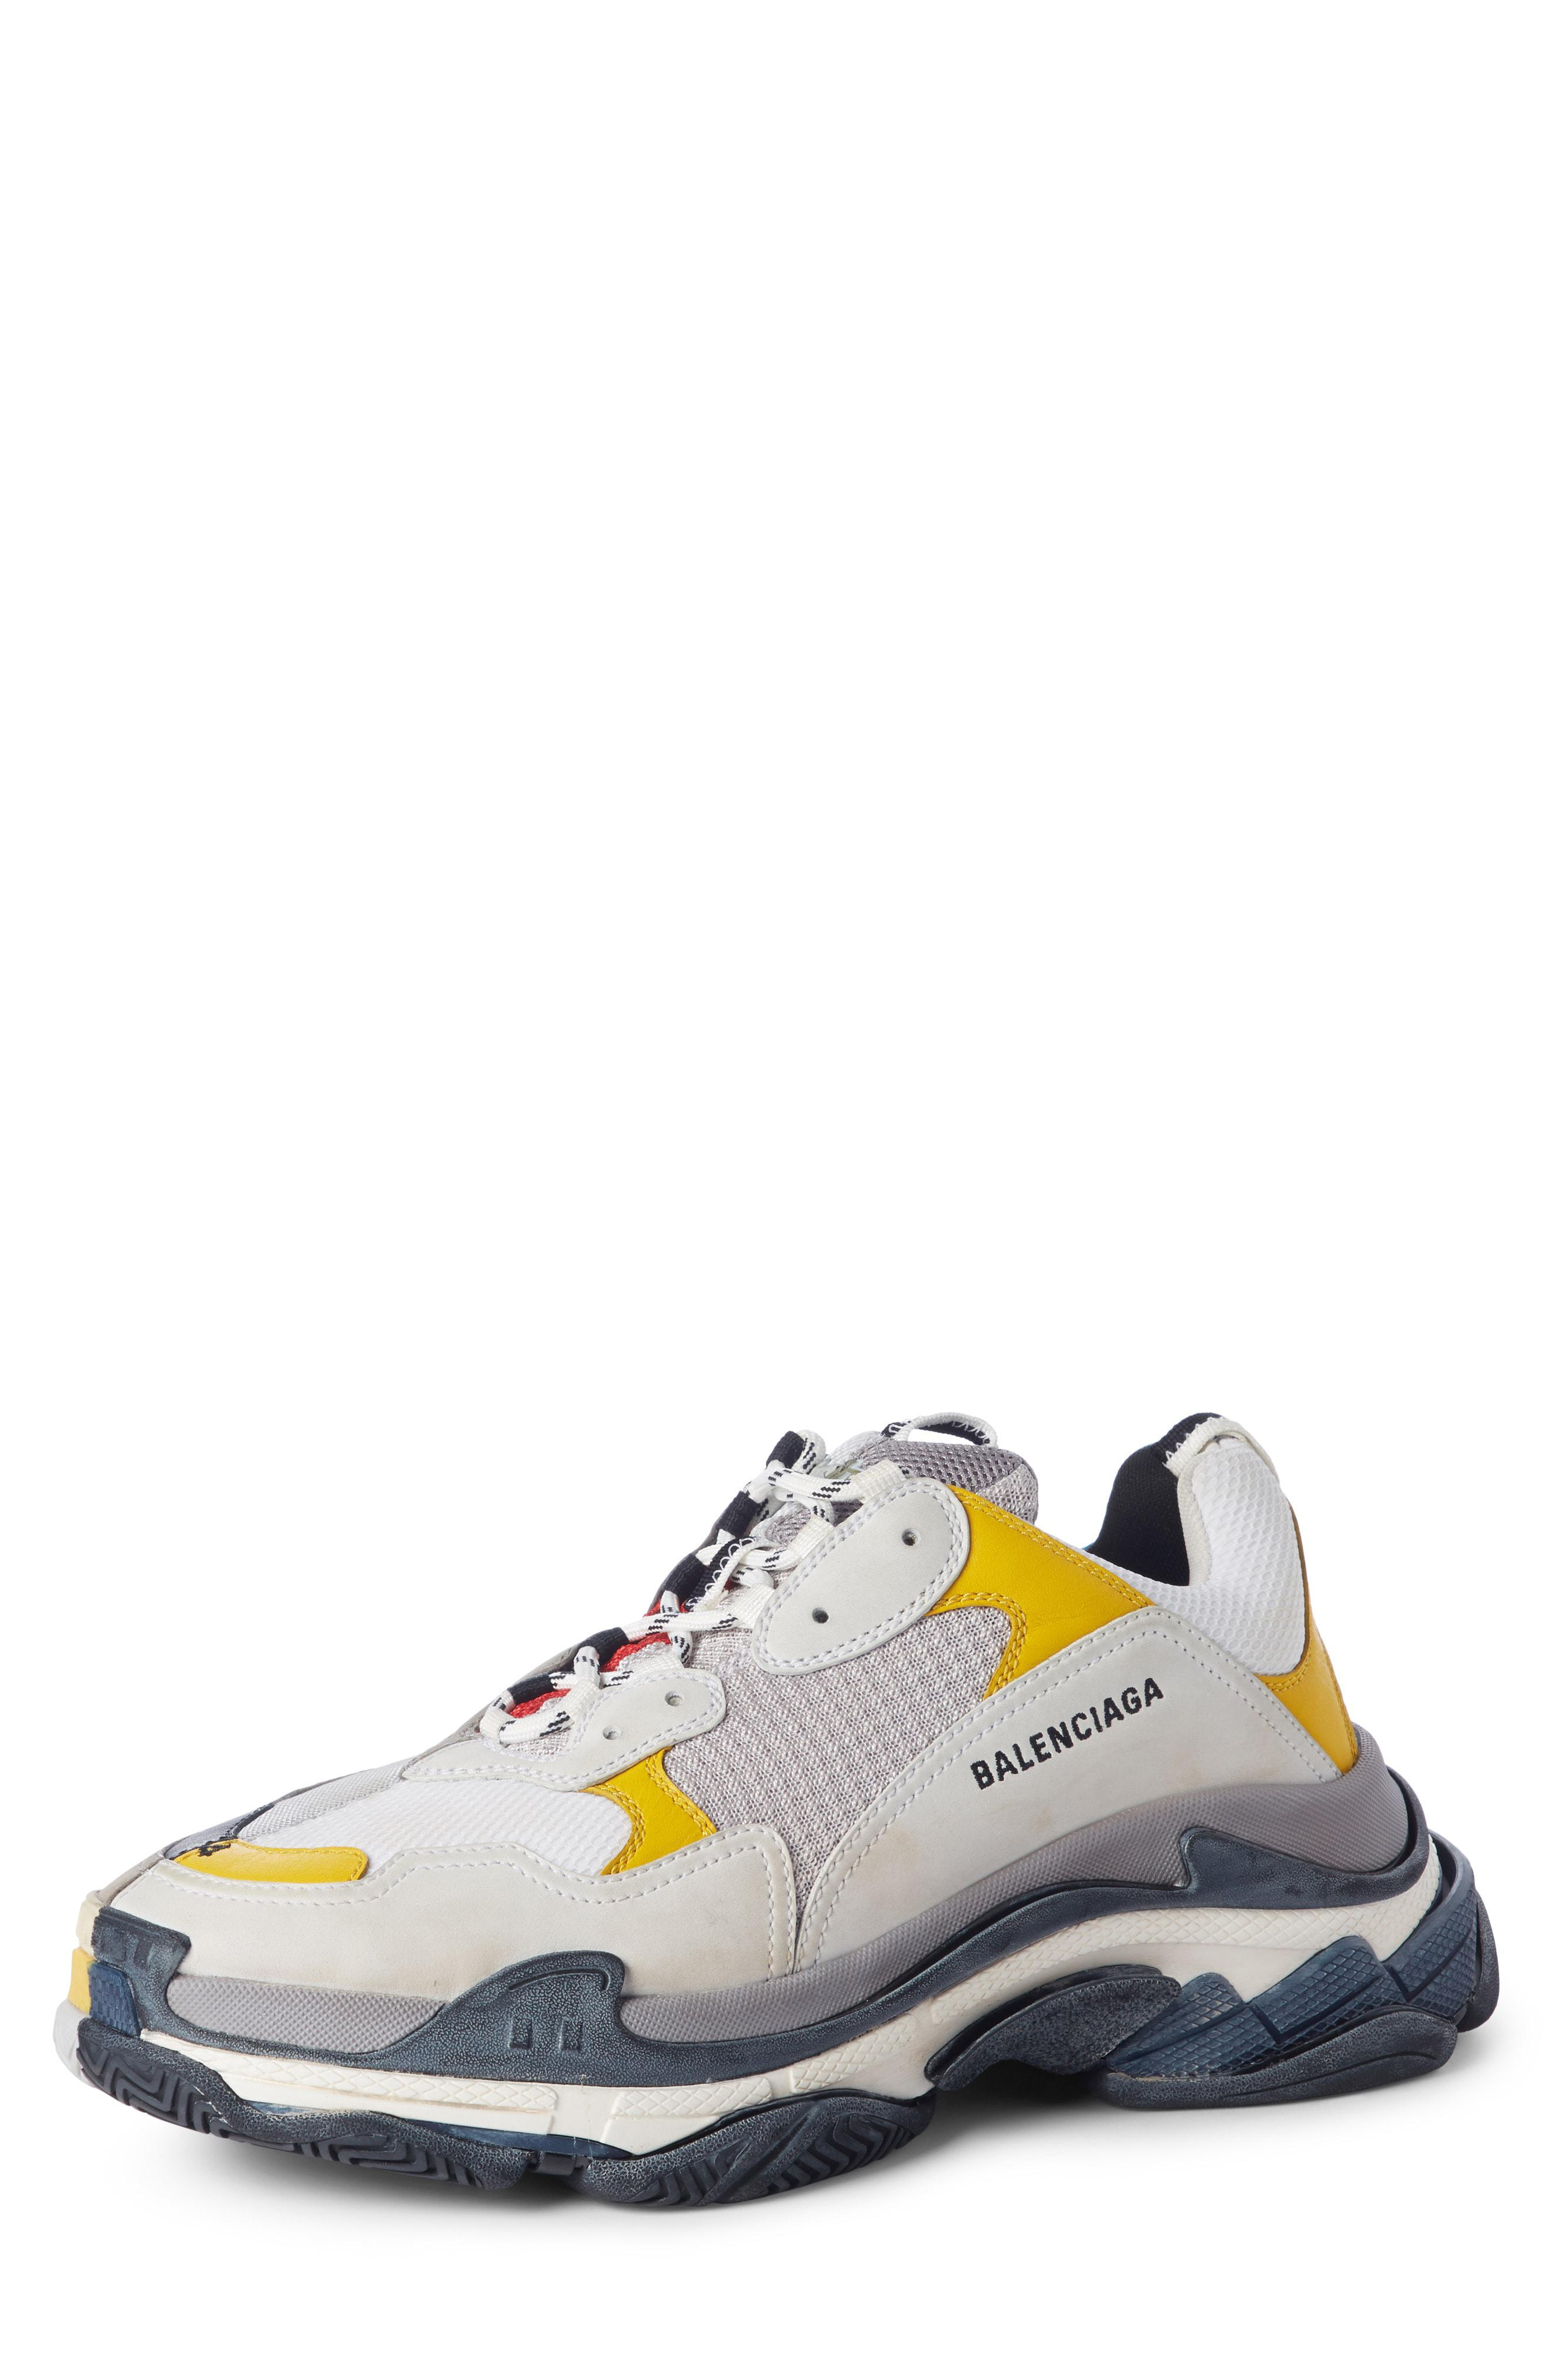 Lyst - Balenciaga Triple-s Split Sneaker for Men 42b2505670